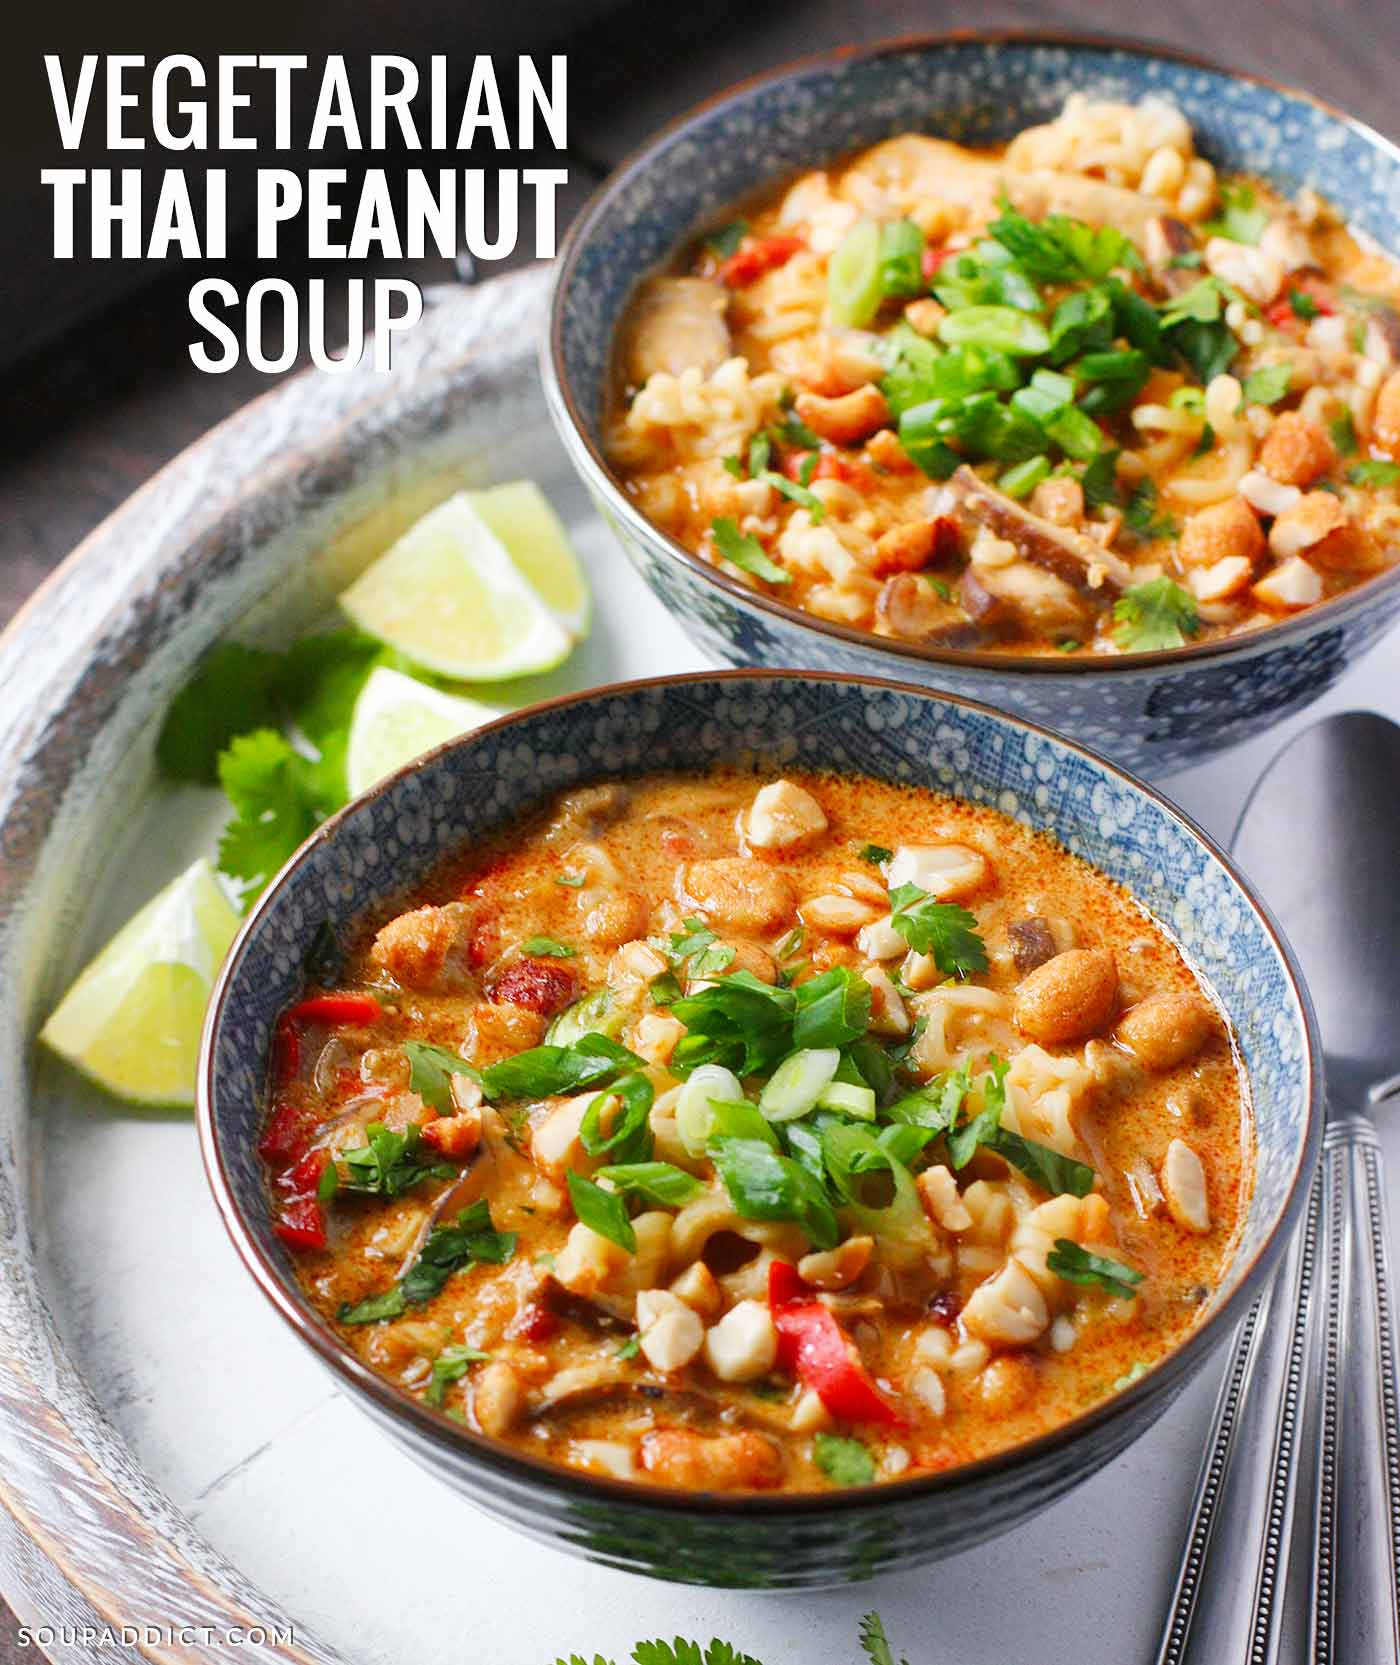 Vegetarian Thai Peanut Soup - Recipe at SoupAddict.com